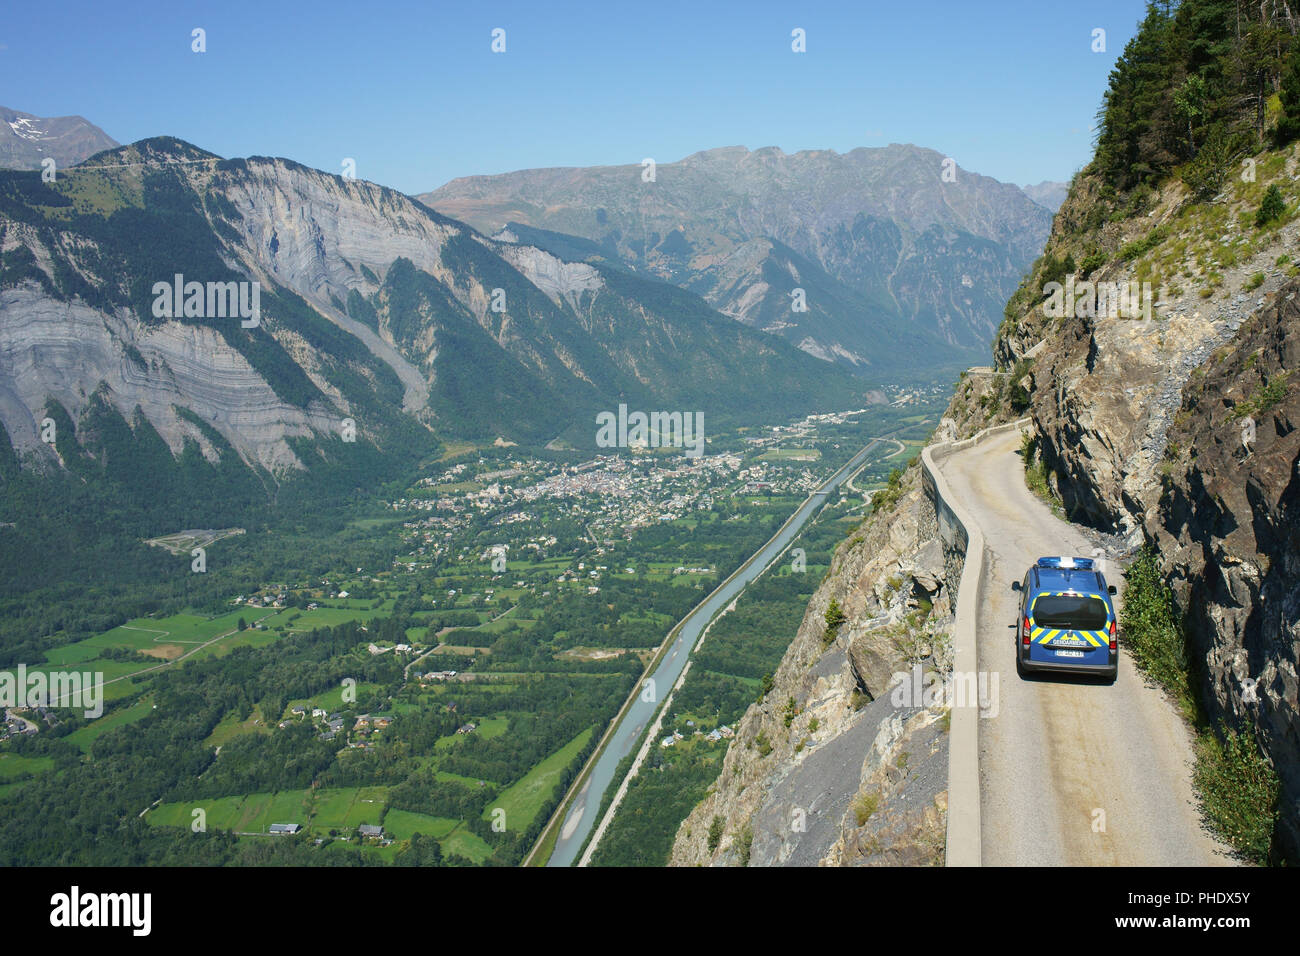 POLICE CAR CRUISING ON A CLIFF SIDE ROAD A STAGGERING 600 METER HIGH ABOVE THE VALLEY FLOOR (aerial view from a 6-meter mast). Auris, Isère, France. Stock Photo